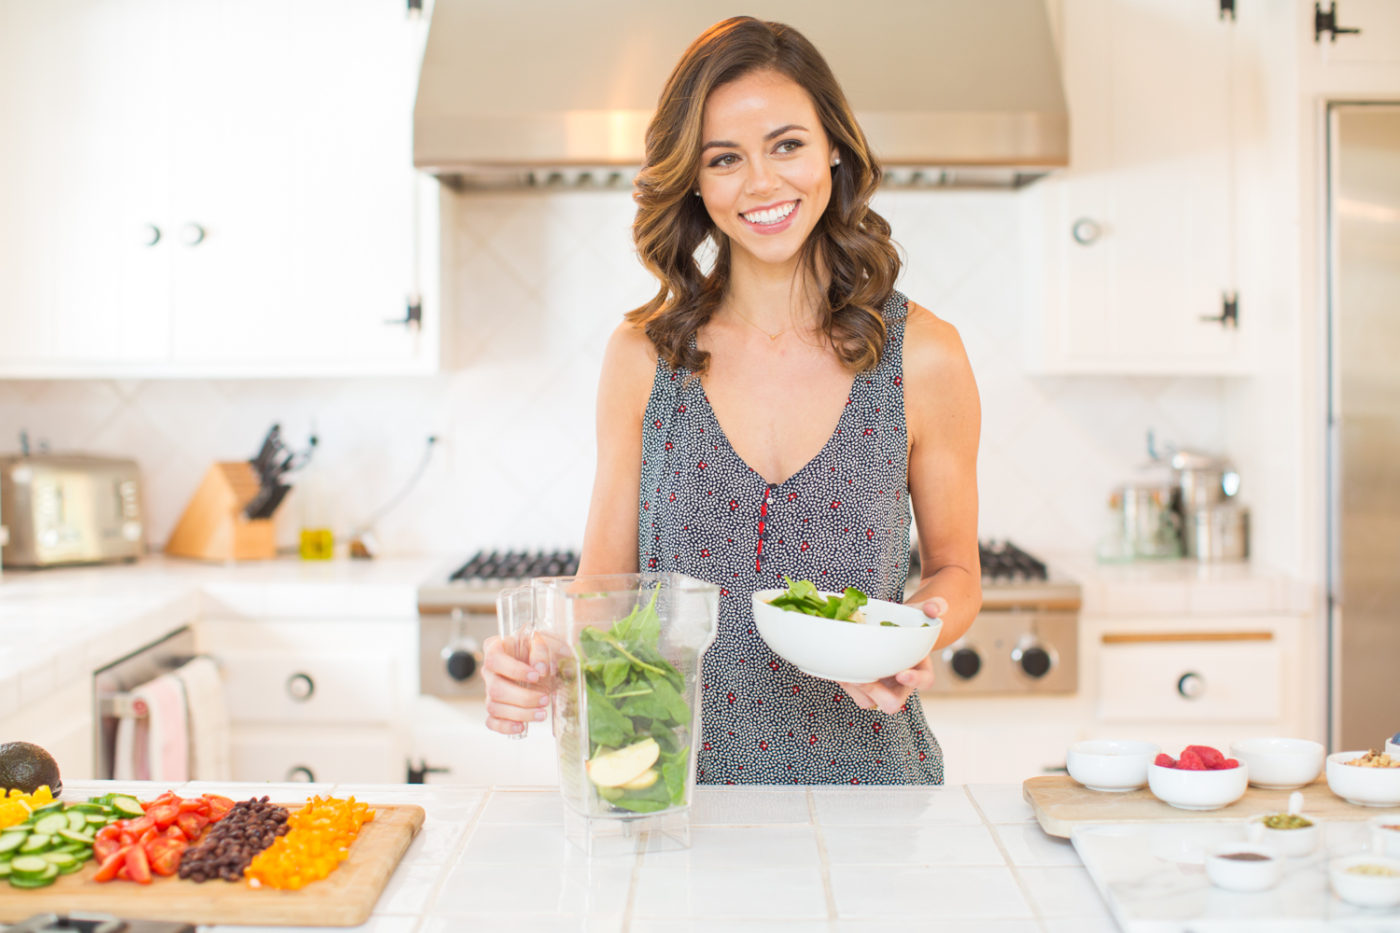 Holistic nutrition and wellness coaching - Feel good, have more energy and glow with Holistic Nutritionist and Wellness Coach, Daniela Kende.